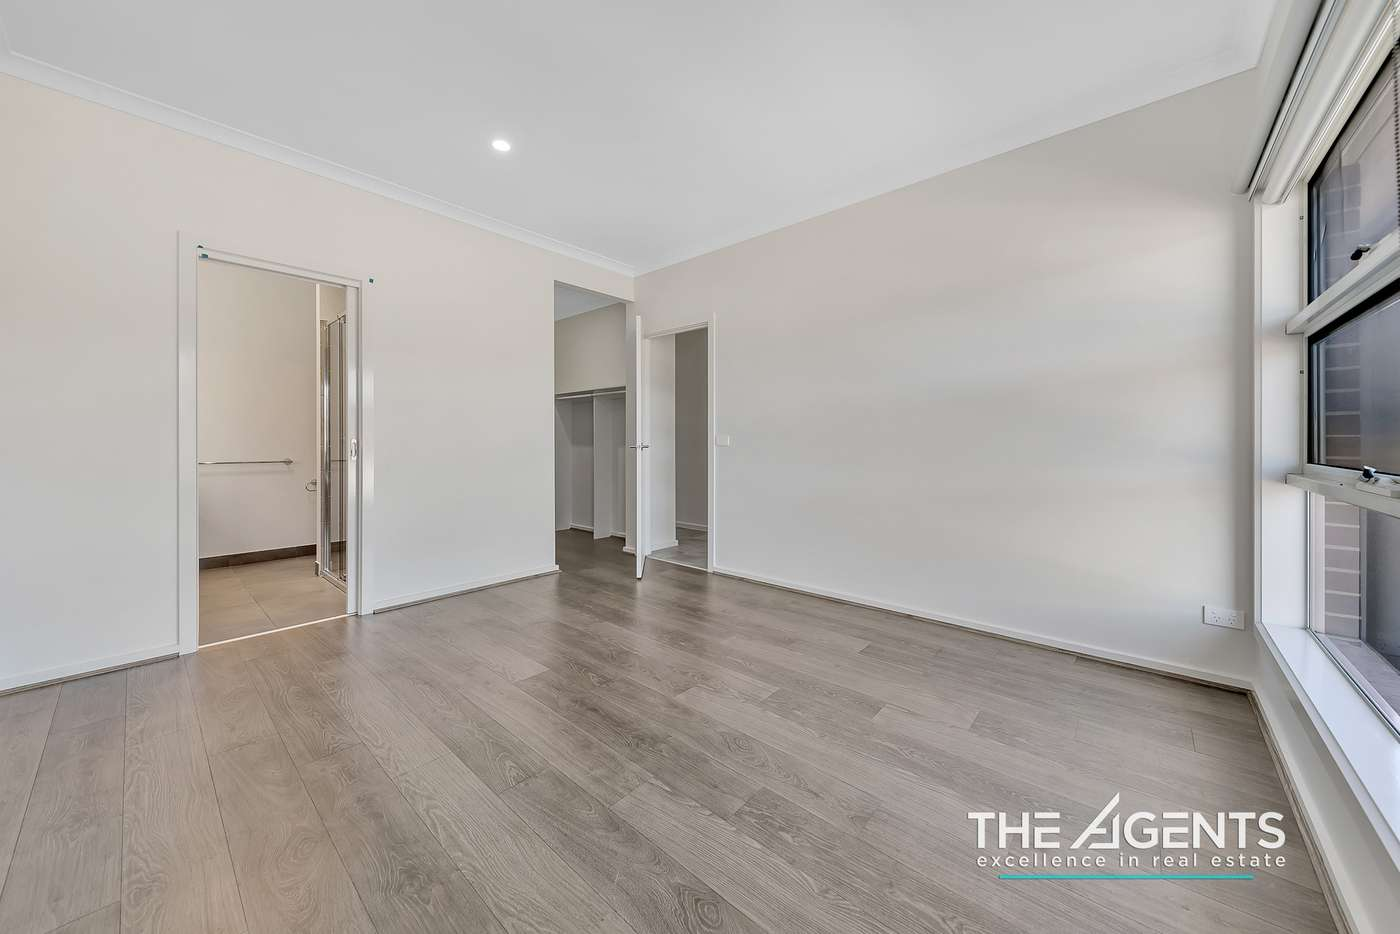 Sixth view of Homely house listing, 49 Dajara Avenue, Wyndham Vale VIC 3024